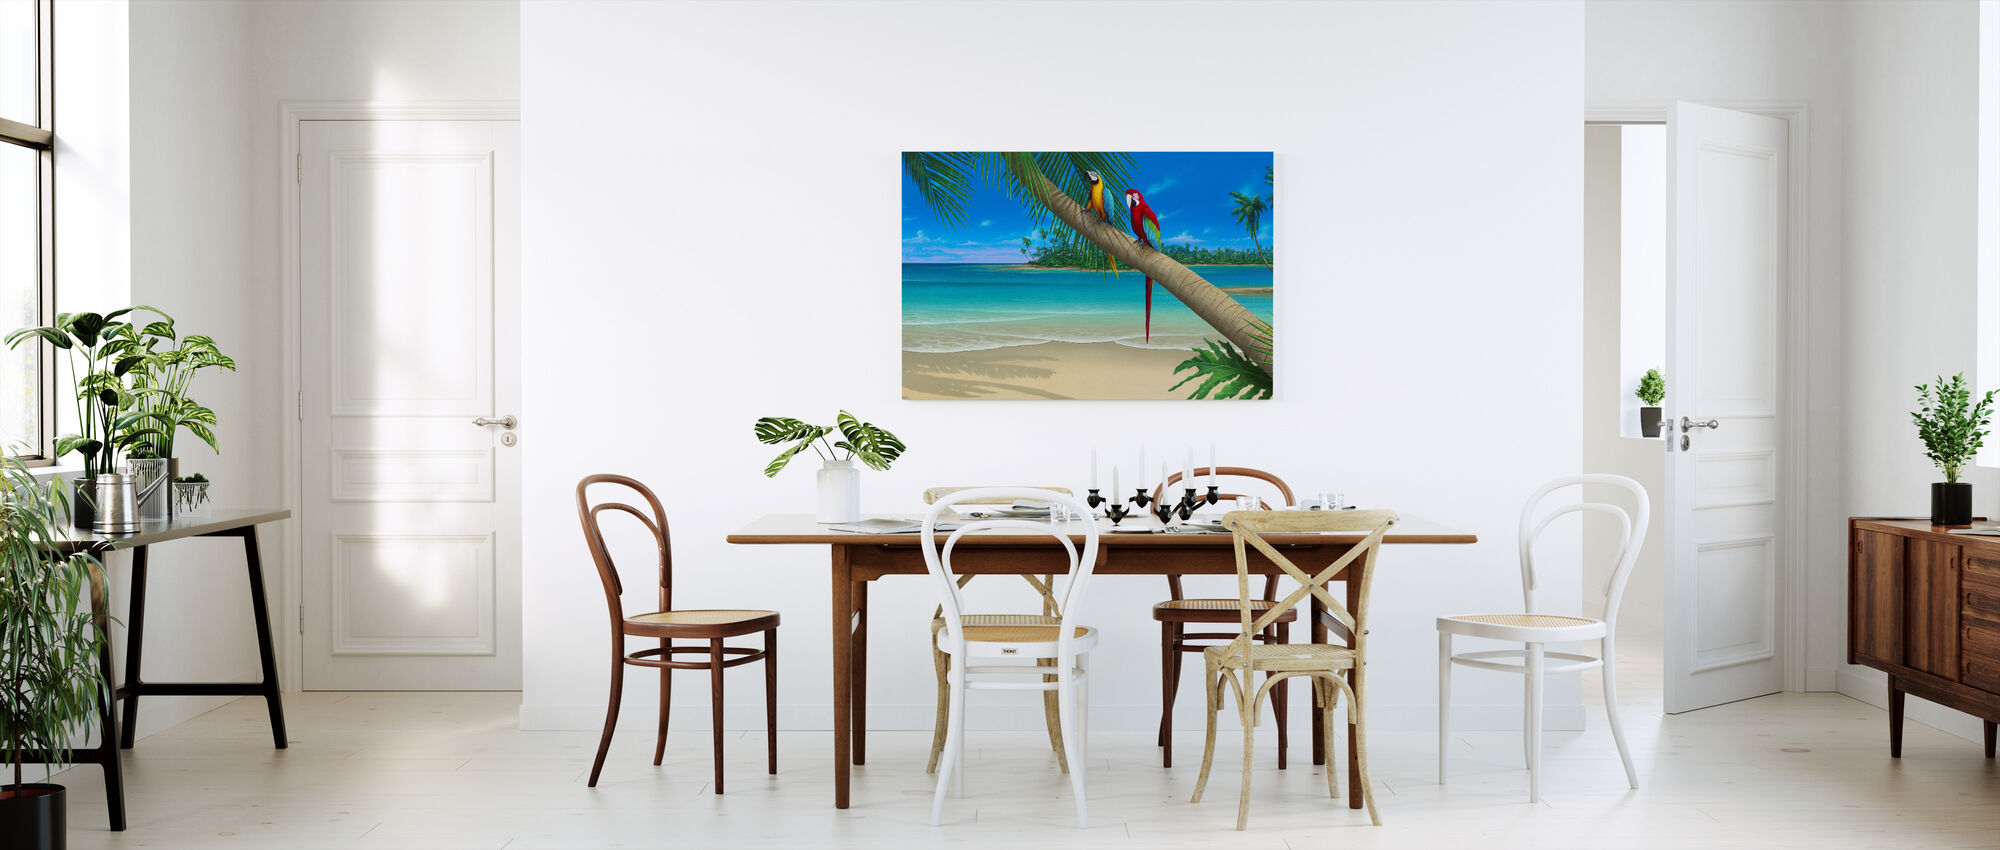 A Perfect Day II - Canvas print - Kitchen